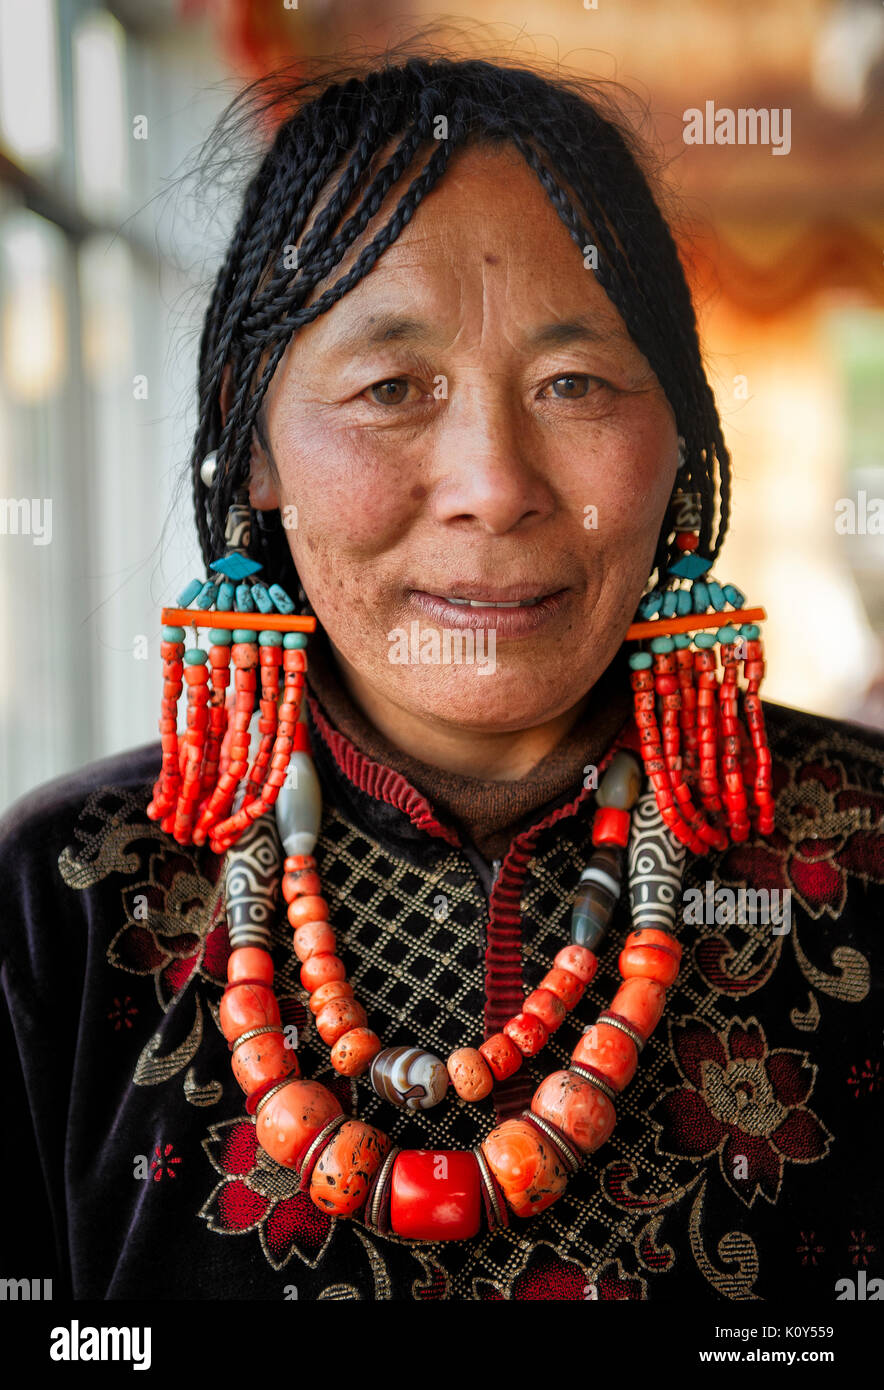 A bride's mother at the reception before the wedding. Tibetan plateau - Stock Image